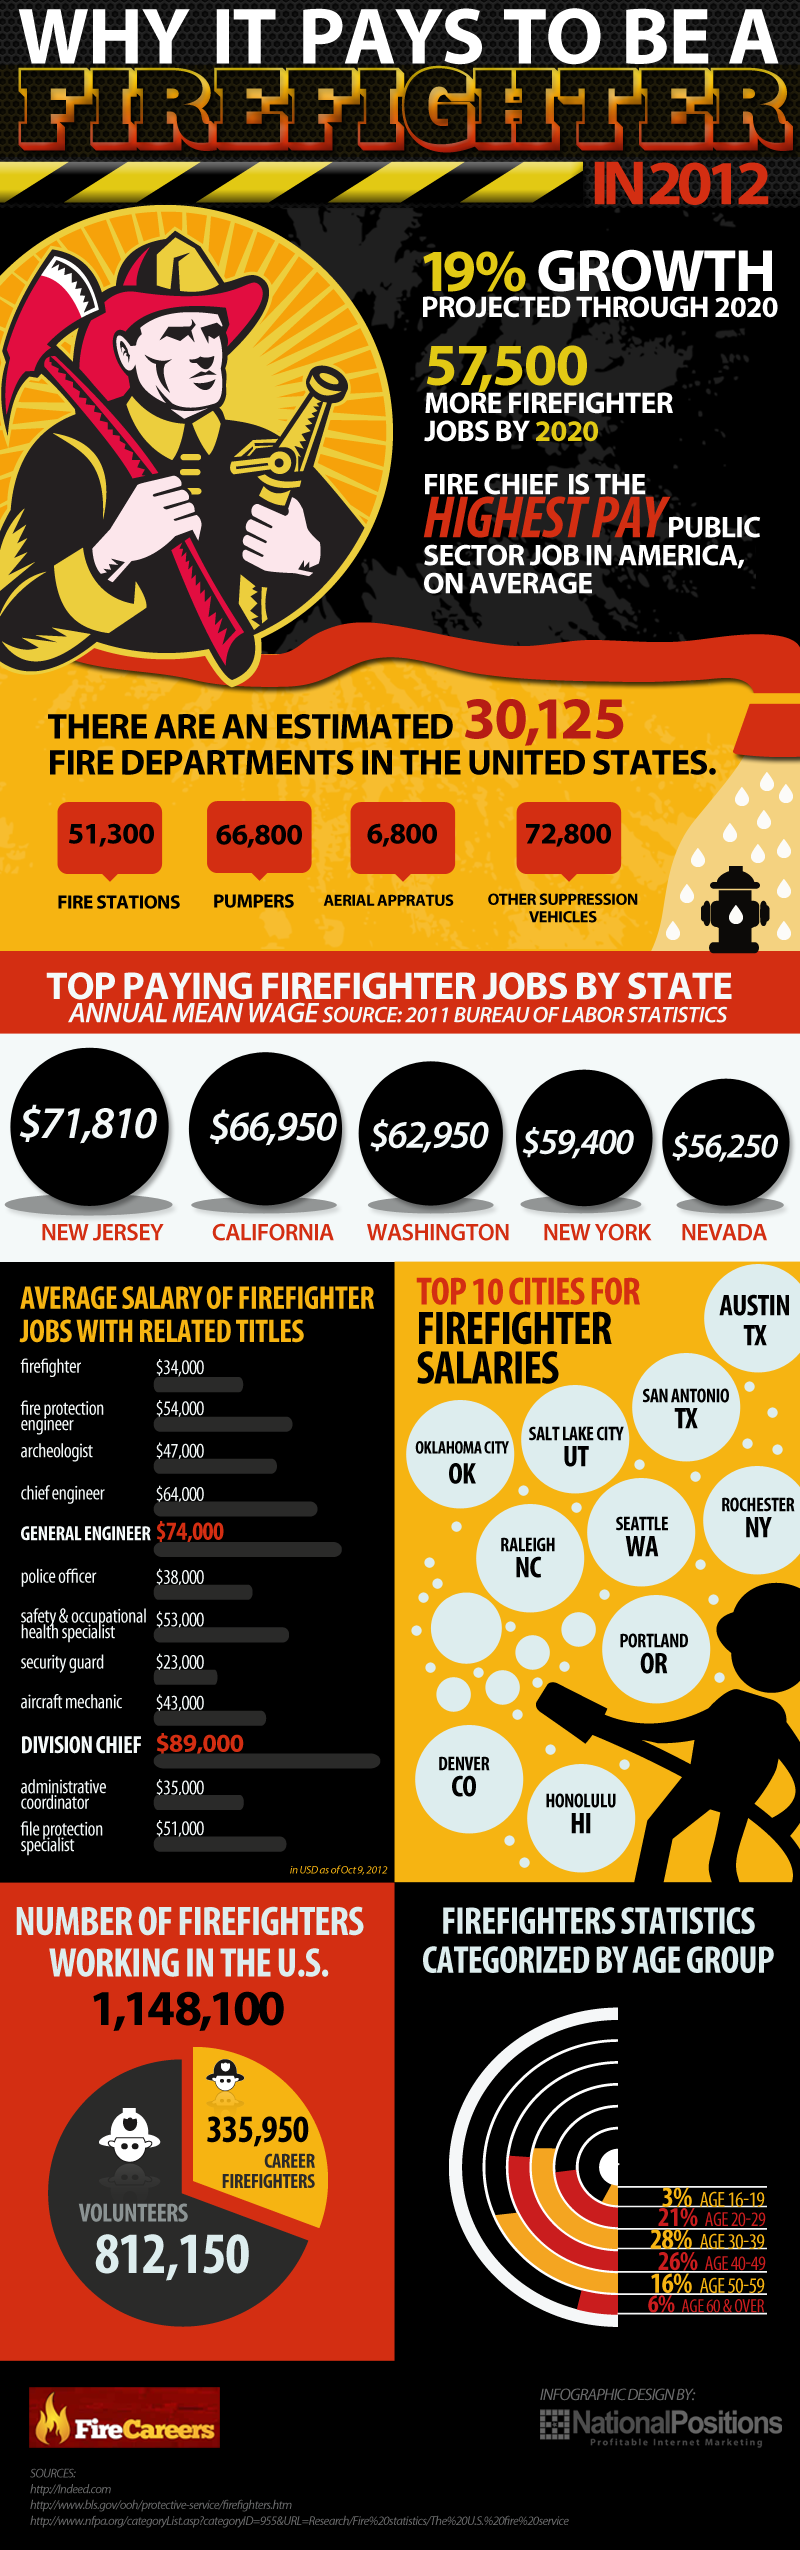 Why It Pays To Be a Firefighter